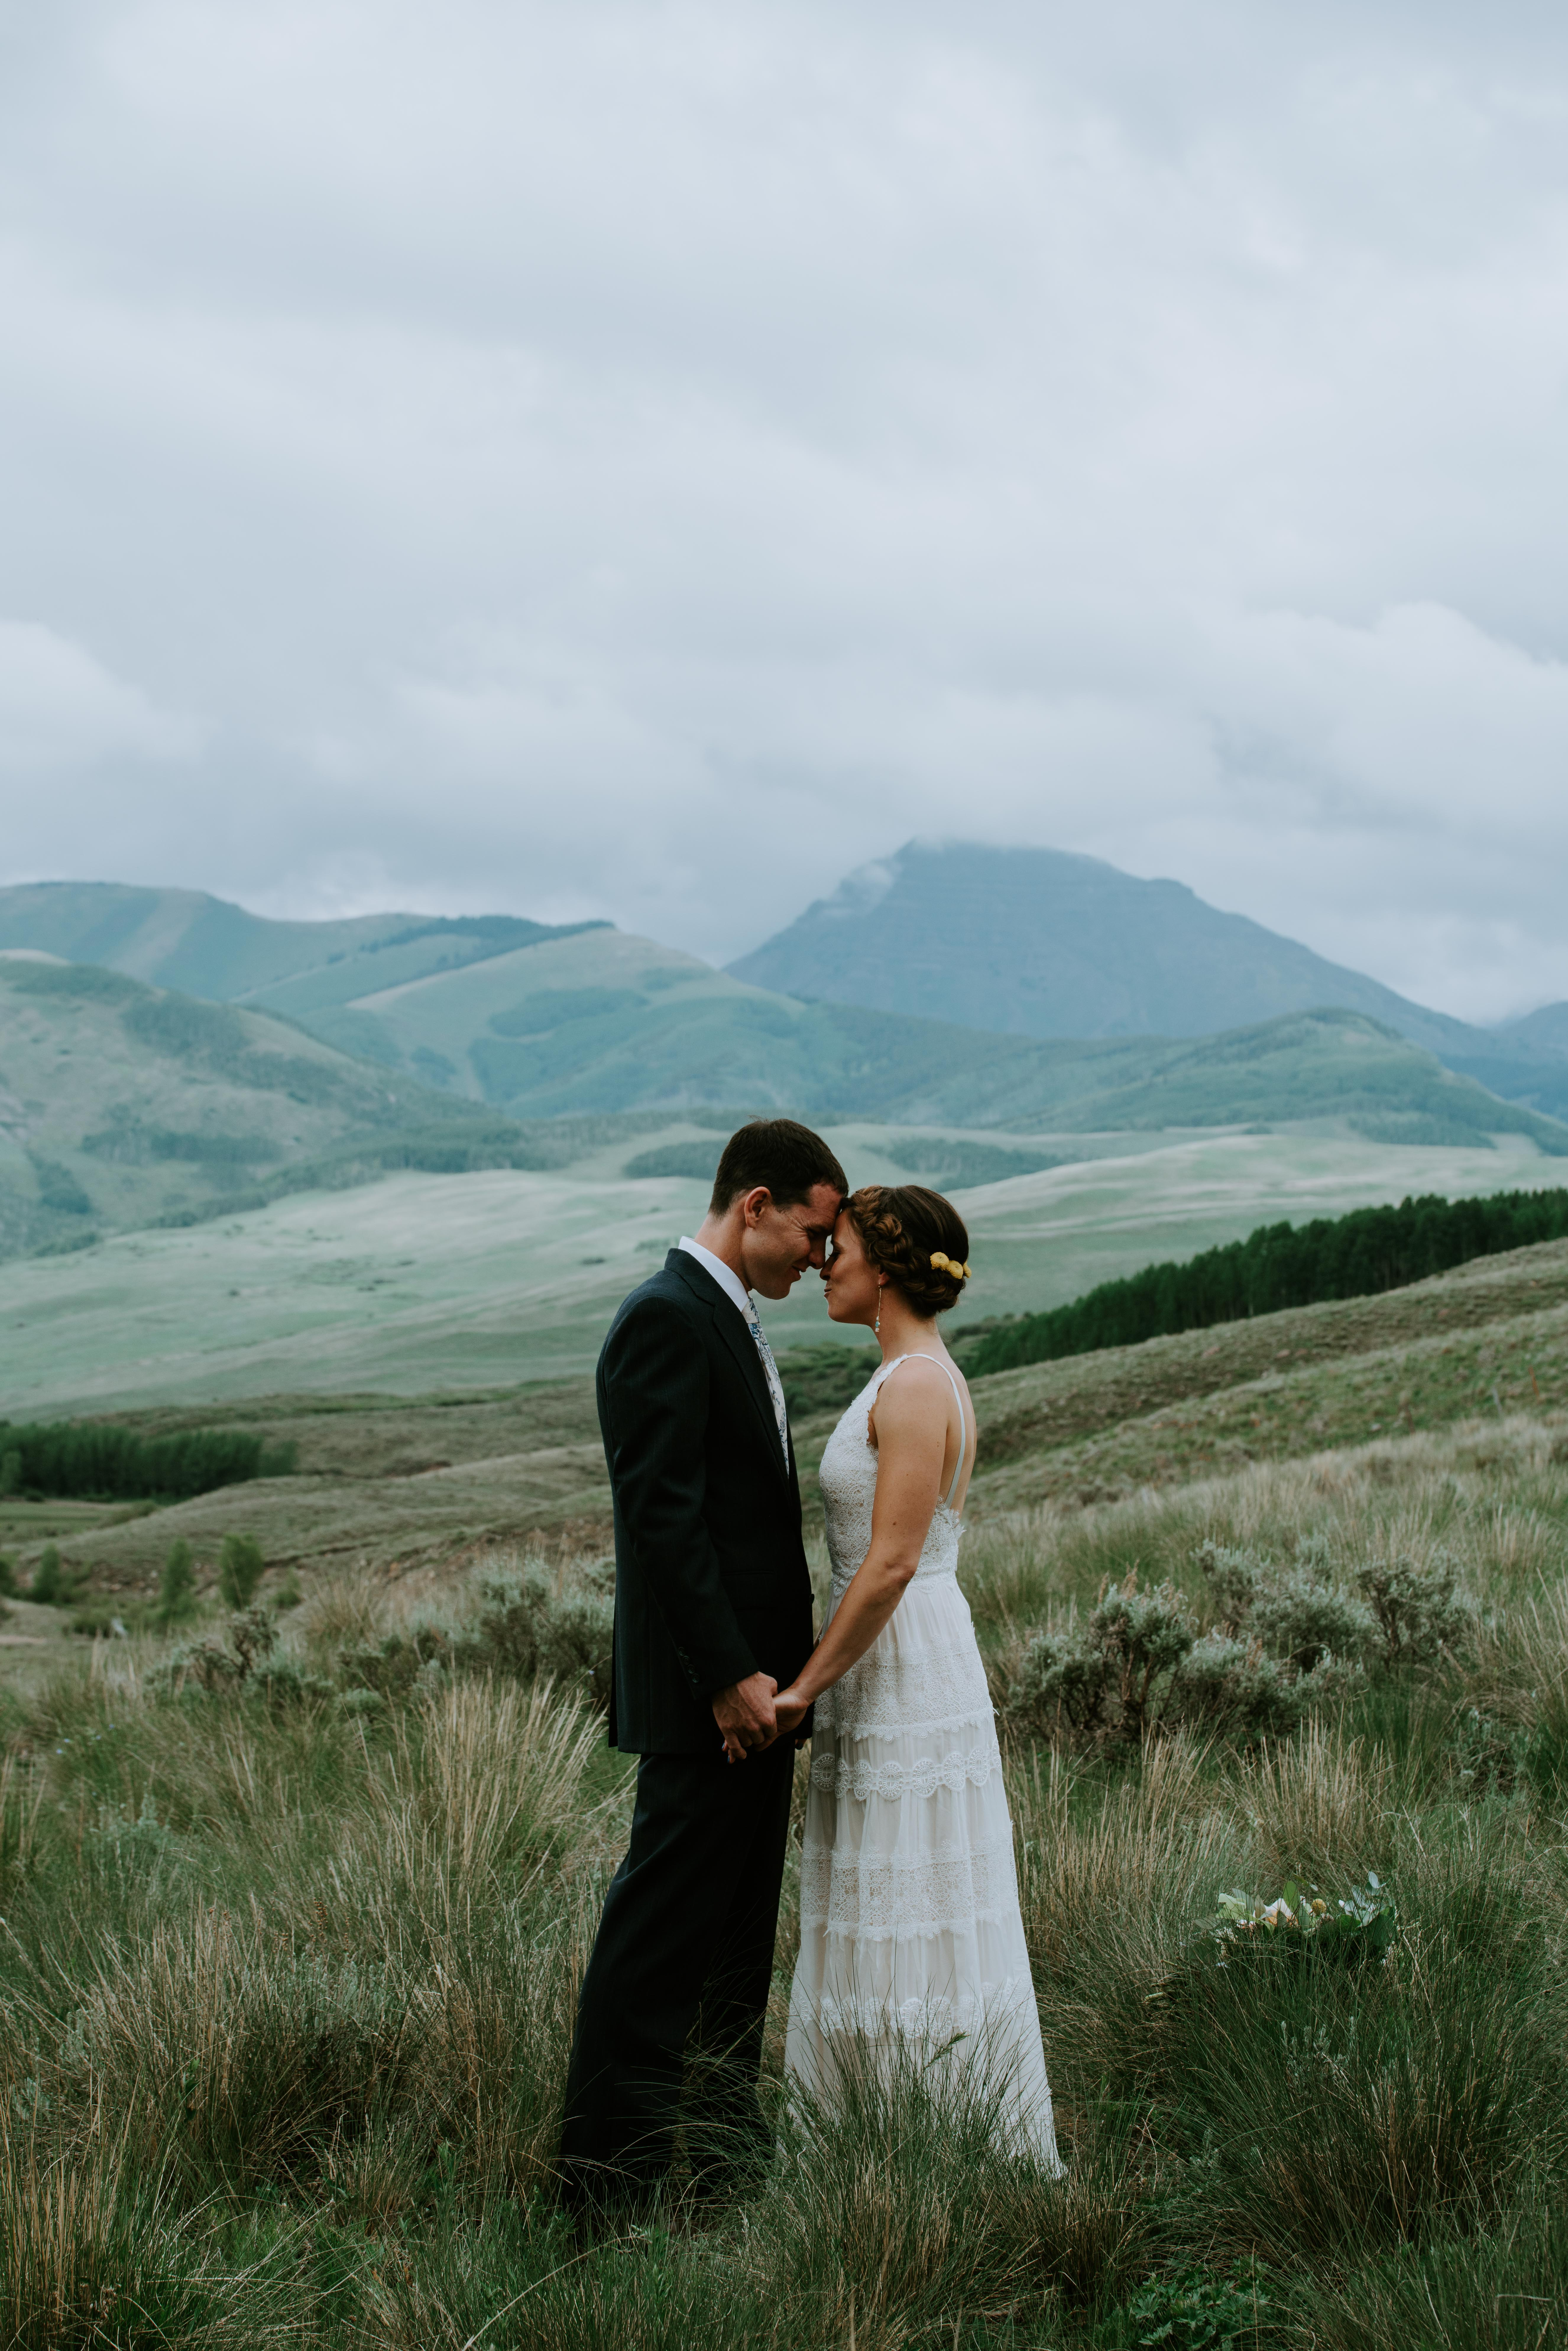 Laura_Alexe_Wedding_Crested_Butte_MegONeillPhotography__180616_47